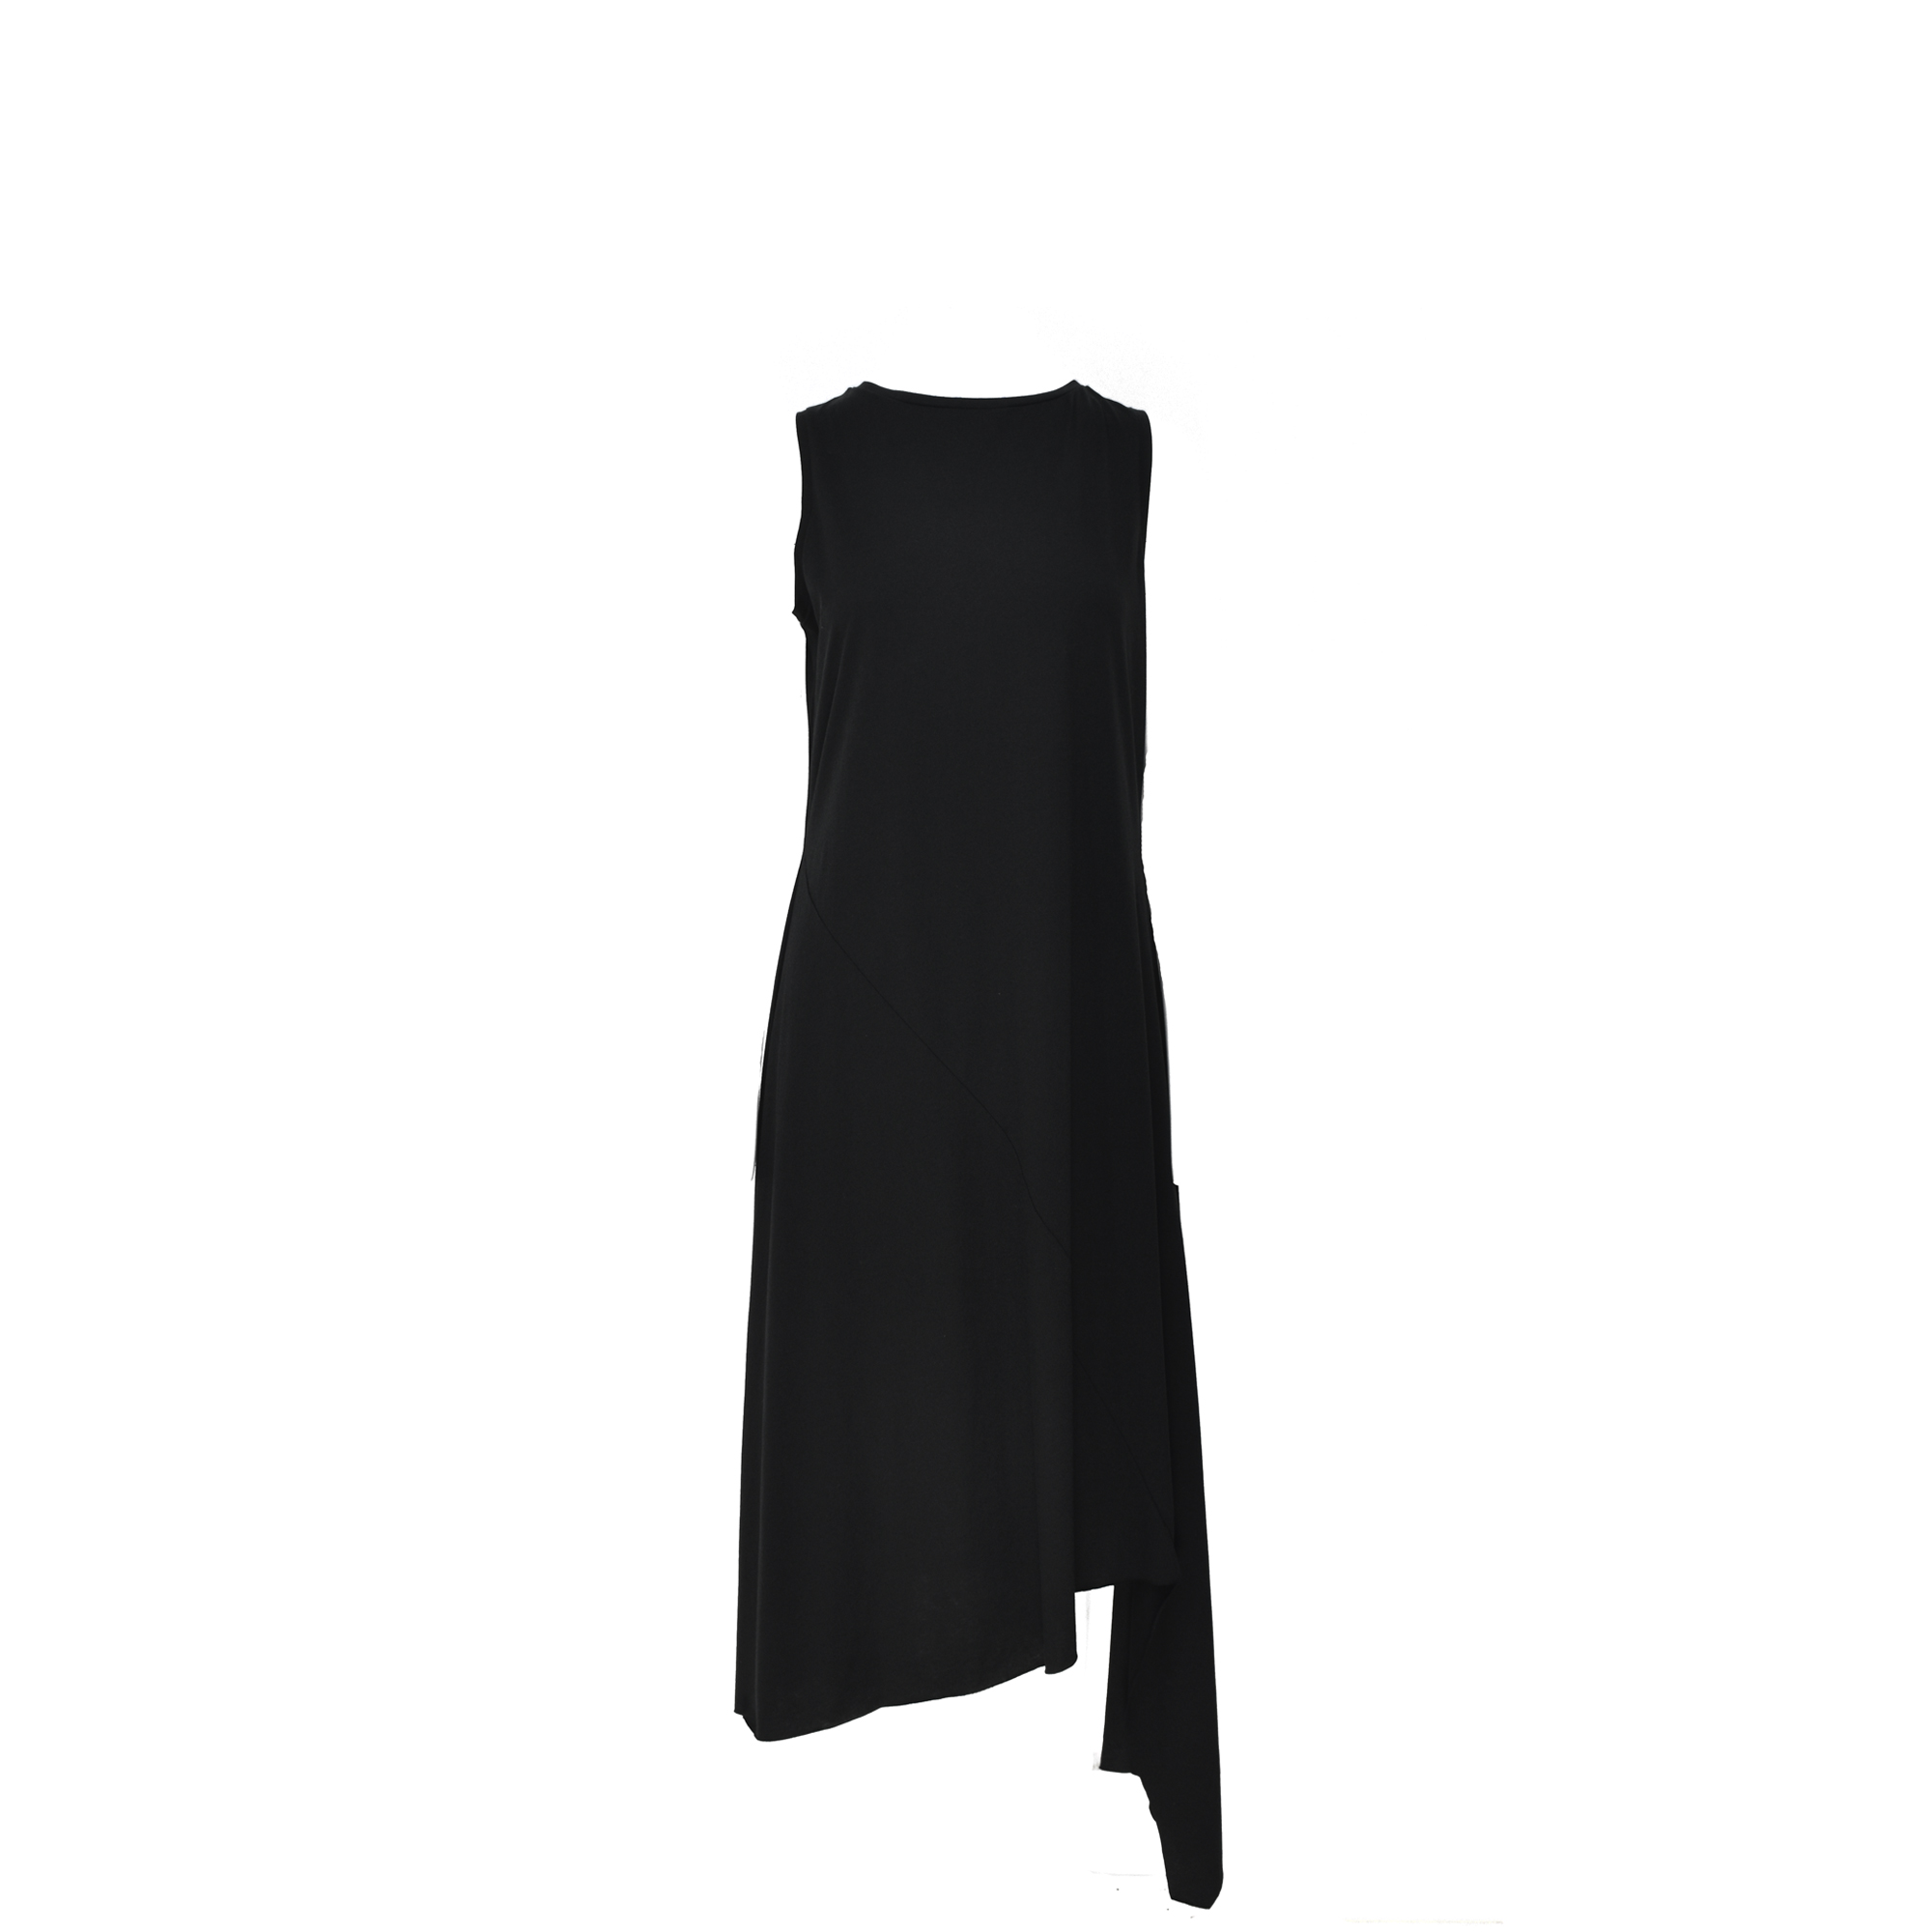 LOTUS EATERS DRESS - DAFFIE